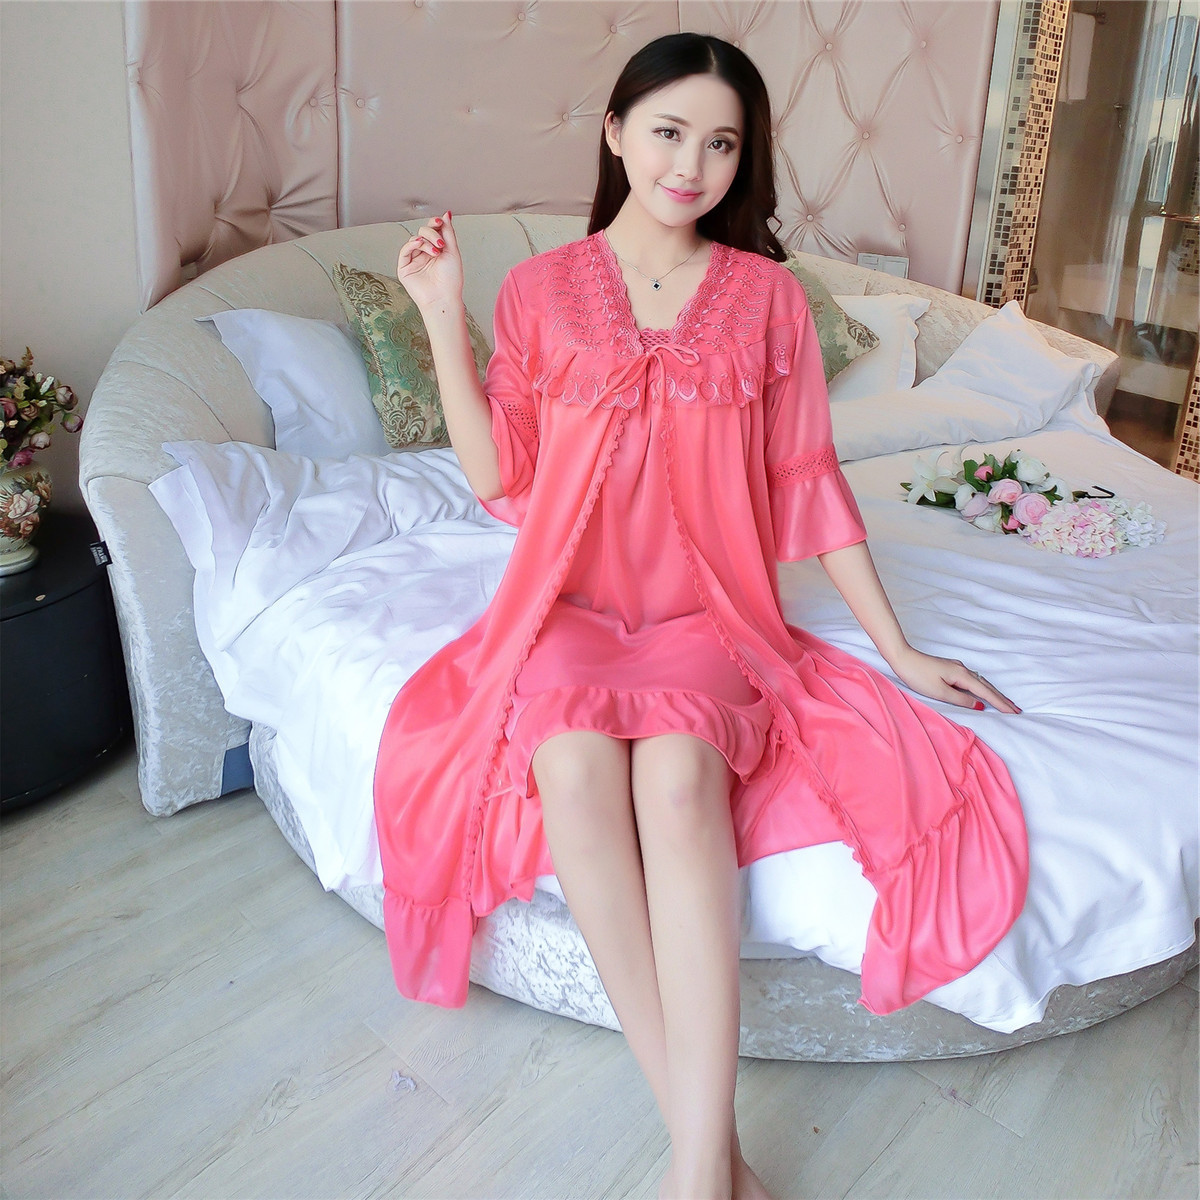 Deep V Neck Women Satin Nightgown Lace Sleepwear Half Sleeve Ladies Silk Nightwear Sleep Wear Night Gown Dress + Outwear